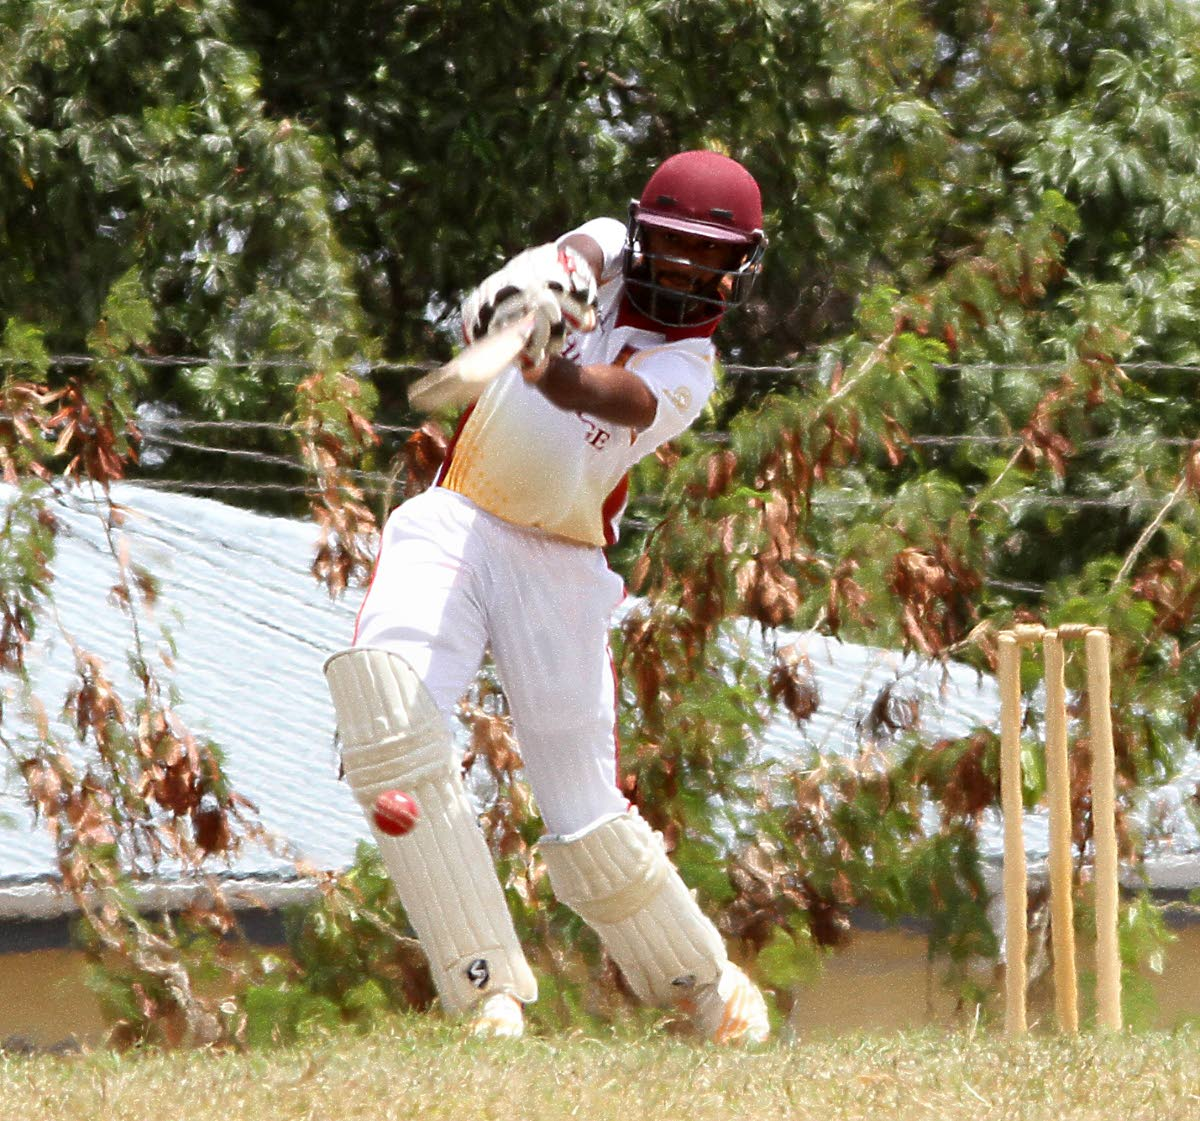 Hillview College's Navin Bidaisee plays a shot during a Powergen Intercol T20 tournament match against Trinity College East, at Honeymoon Park, Tunapuna,yesterday.